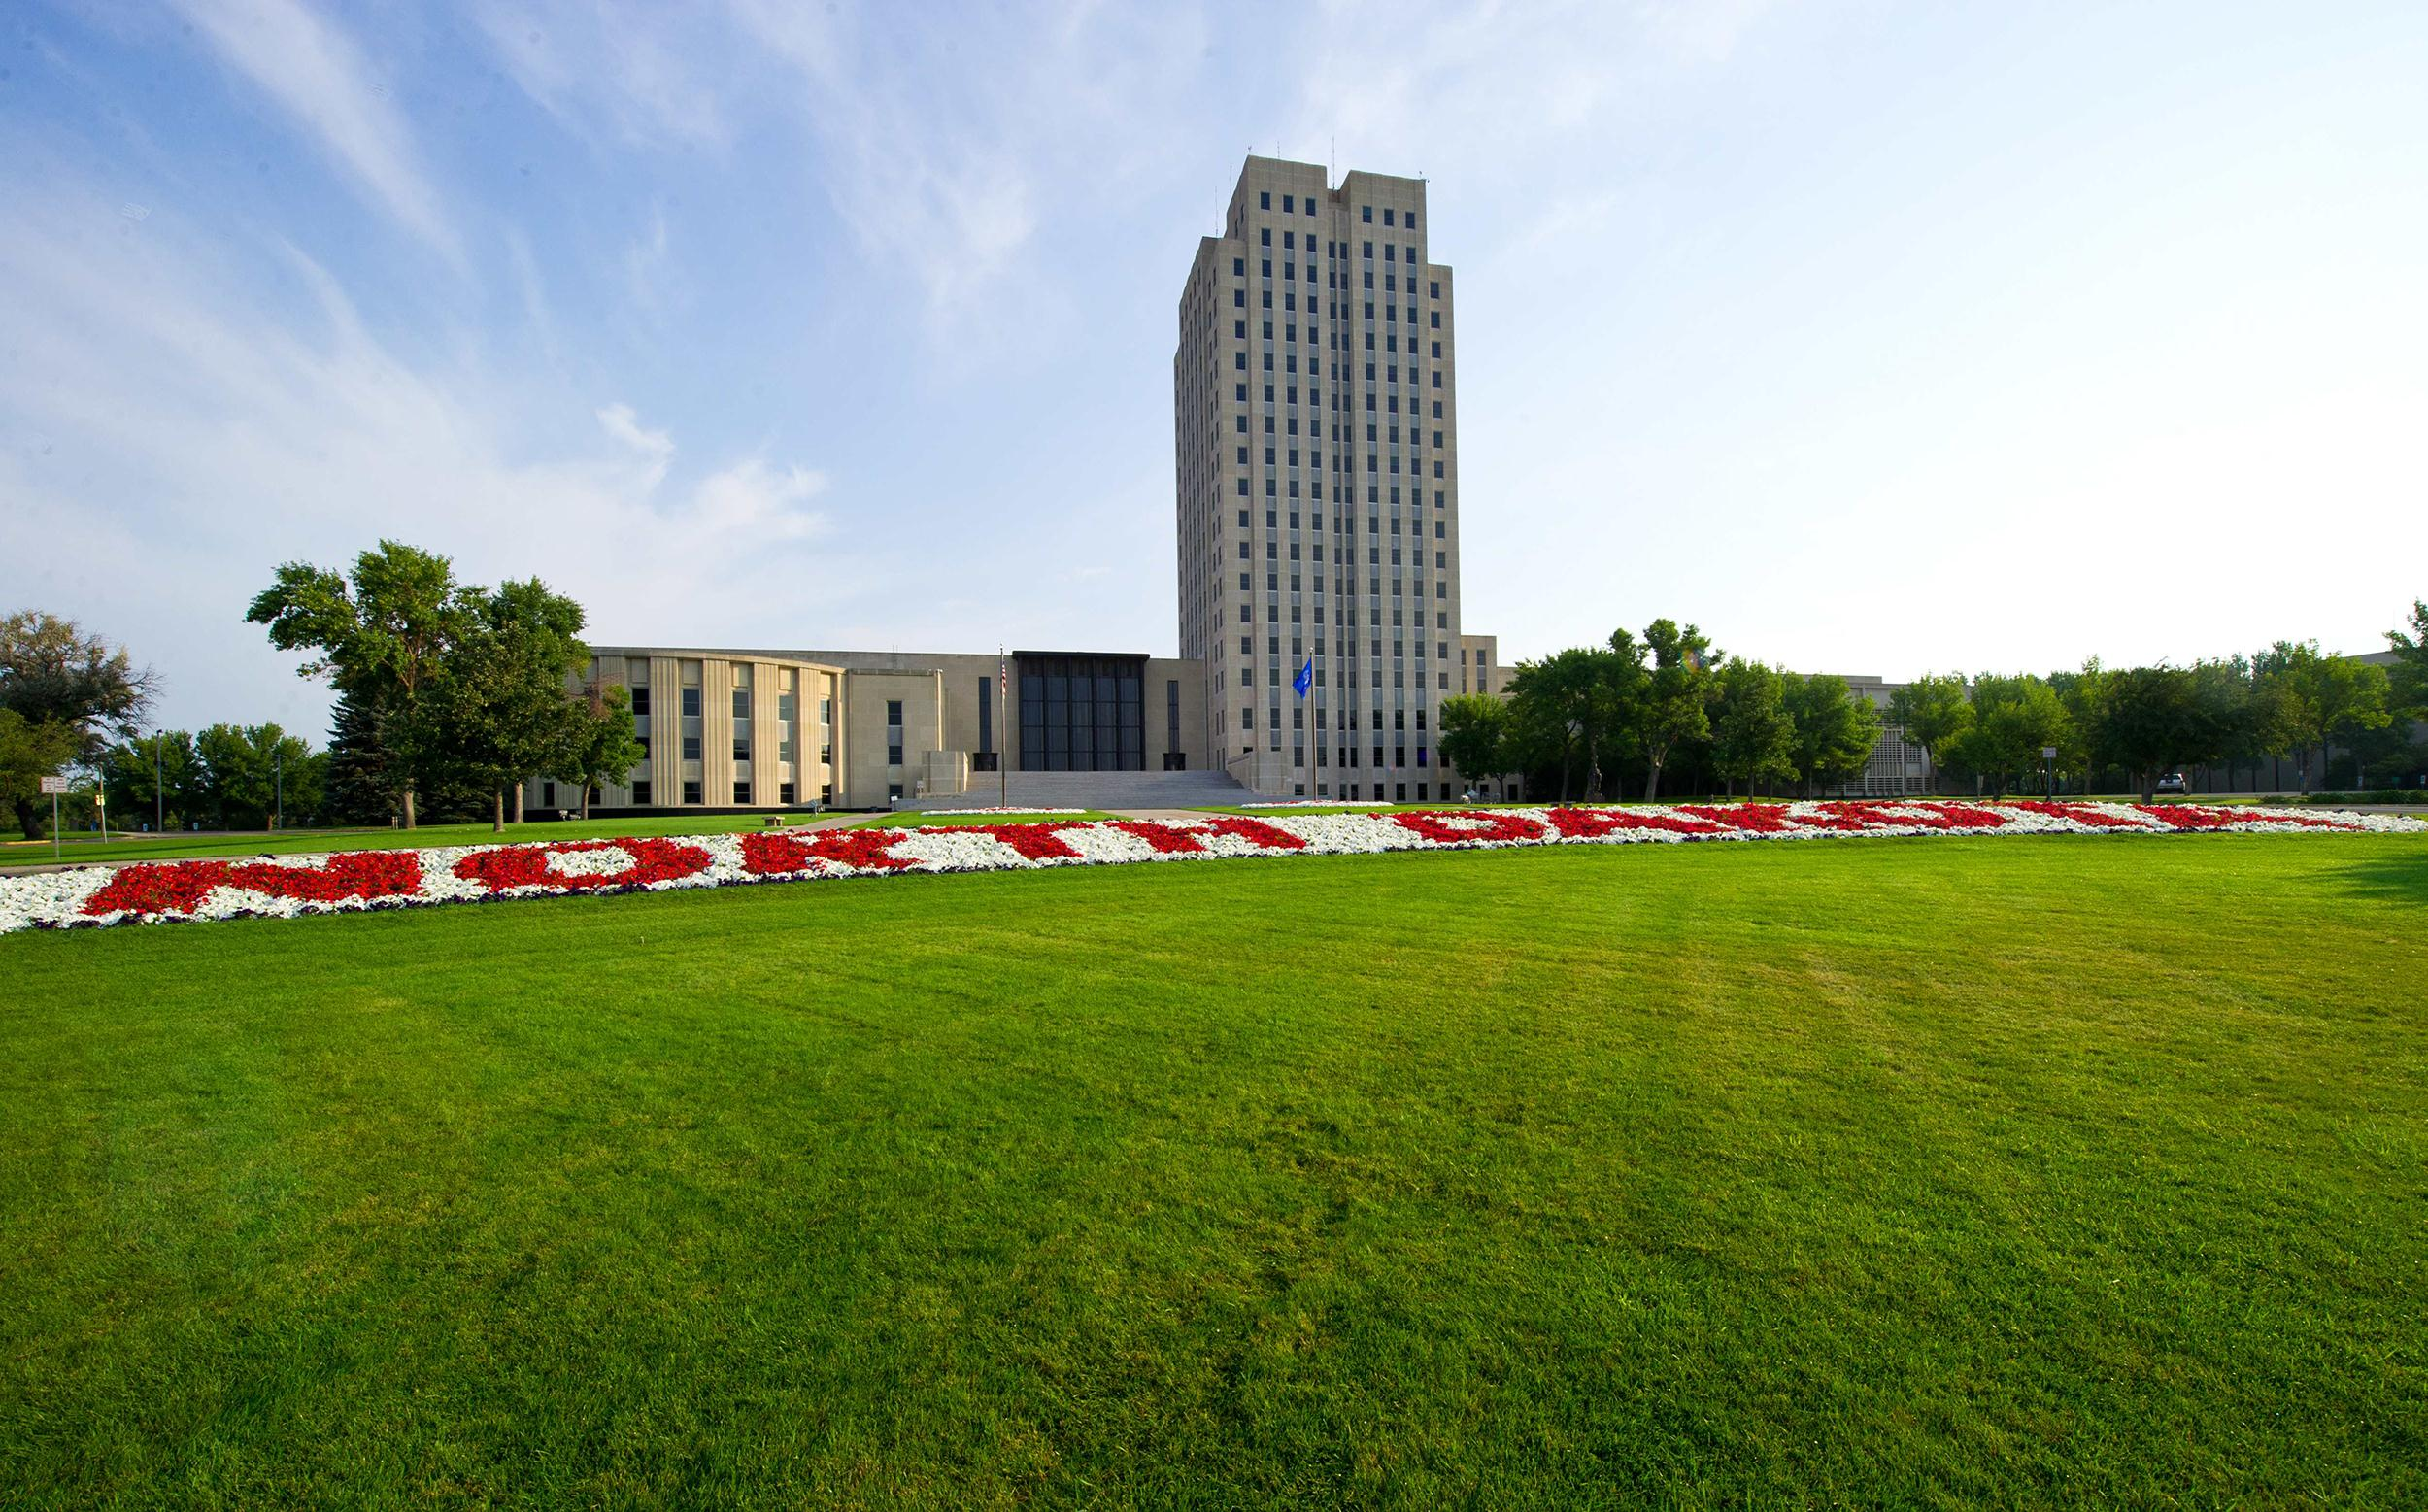 Image: The state Capitol of North Dakota at Bismarck